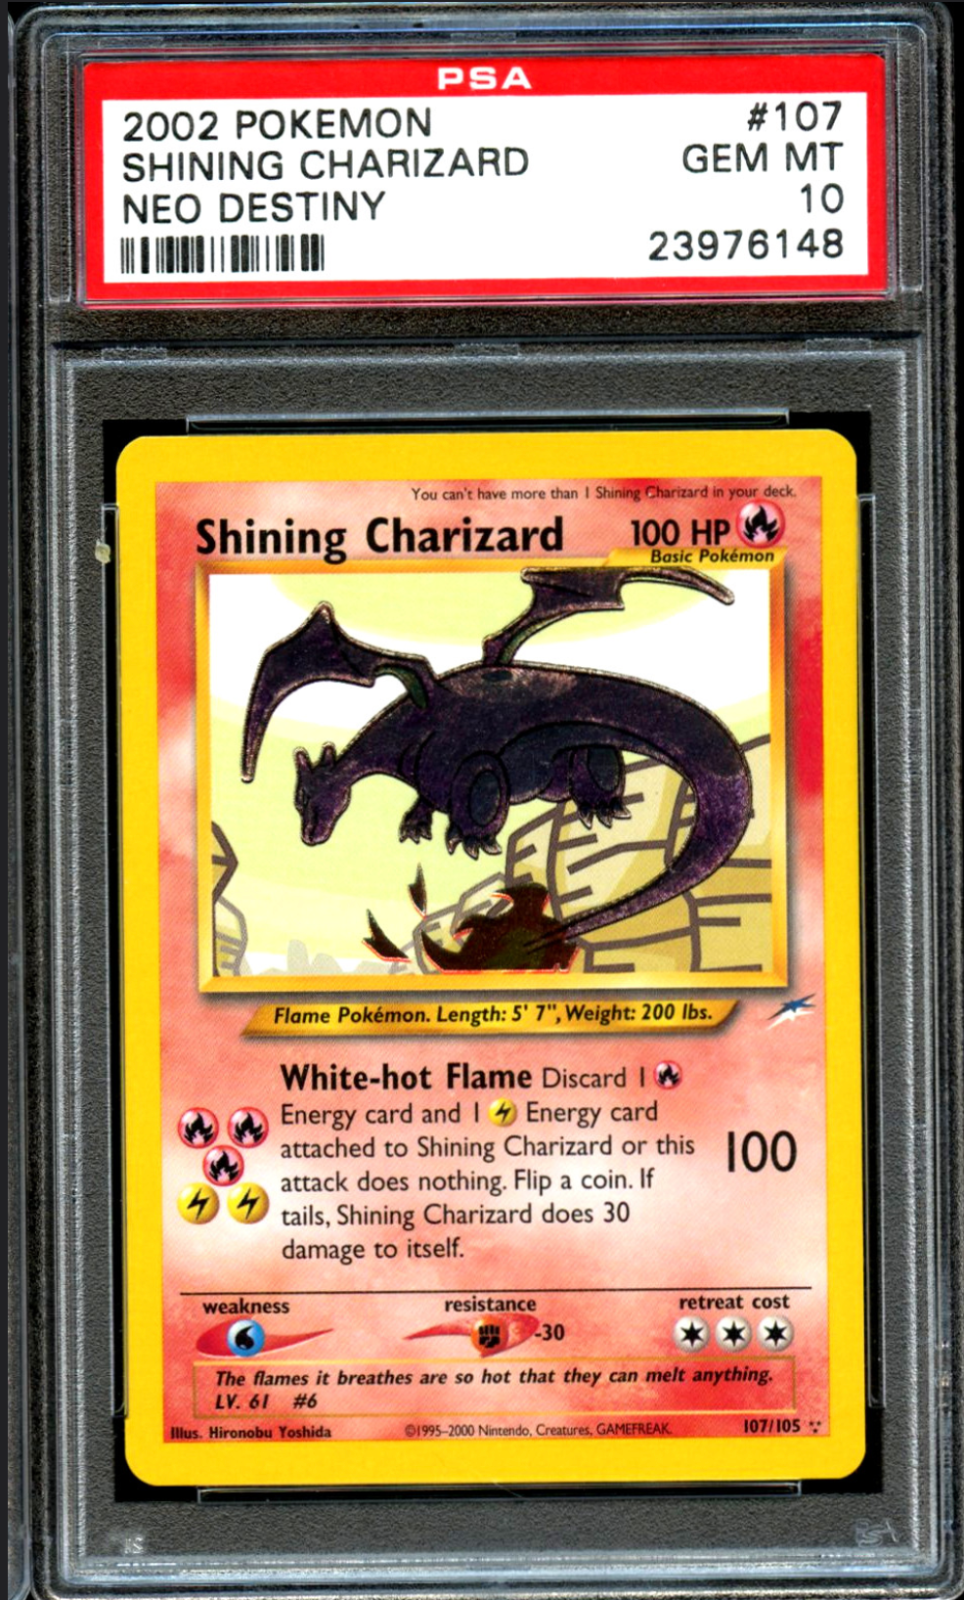 2002 Pokémon Shining Charizard Card